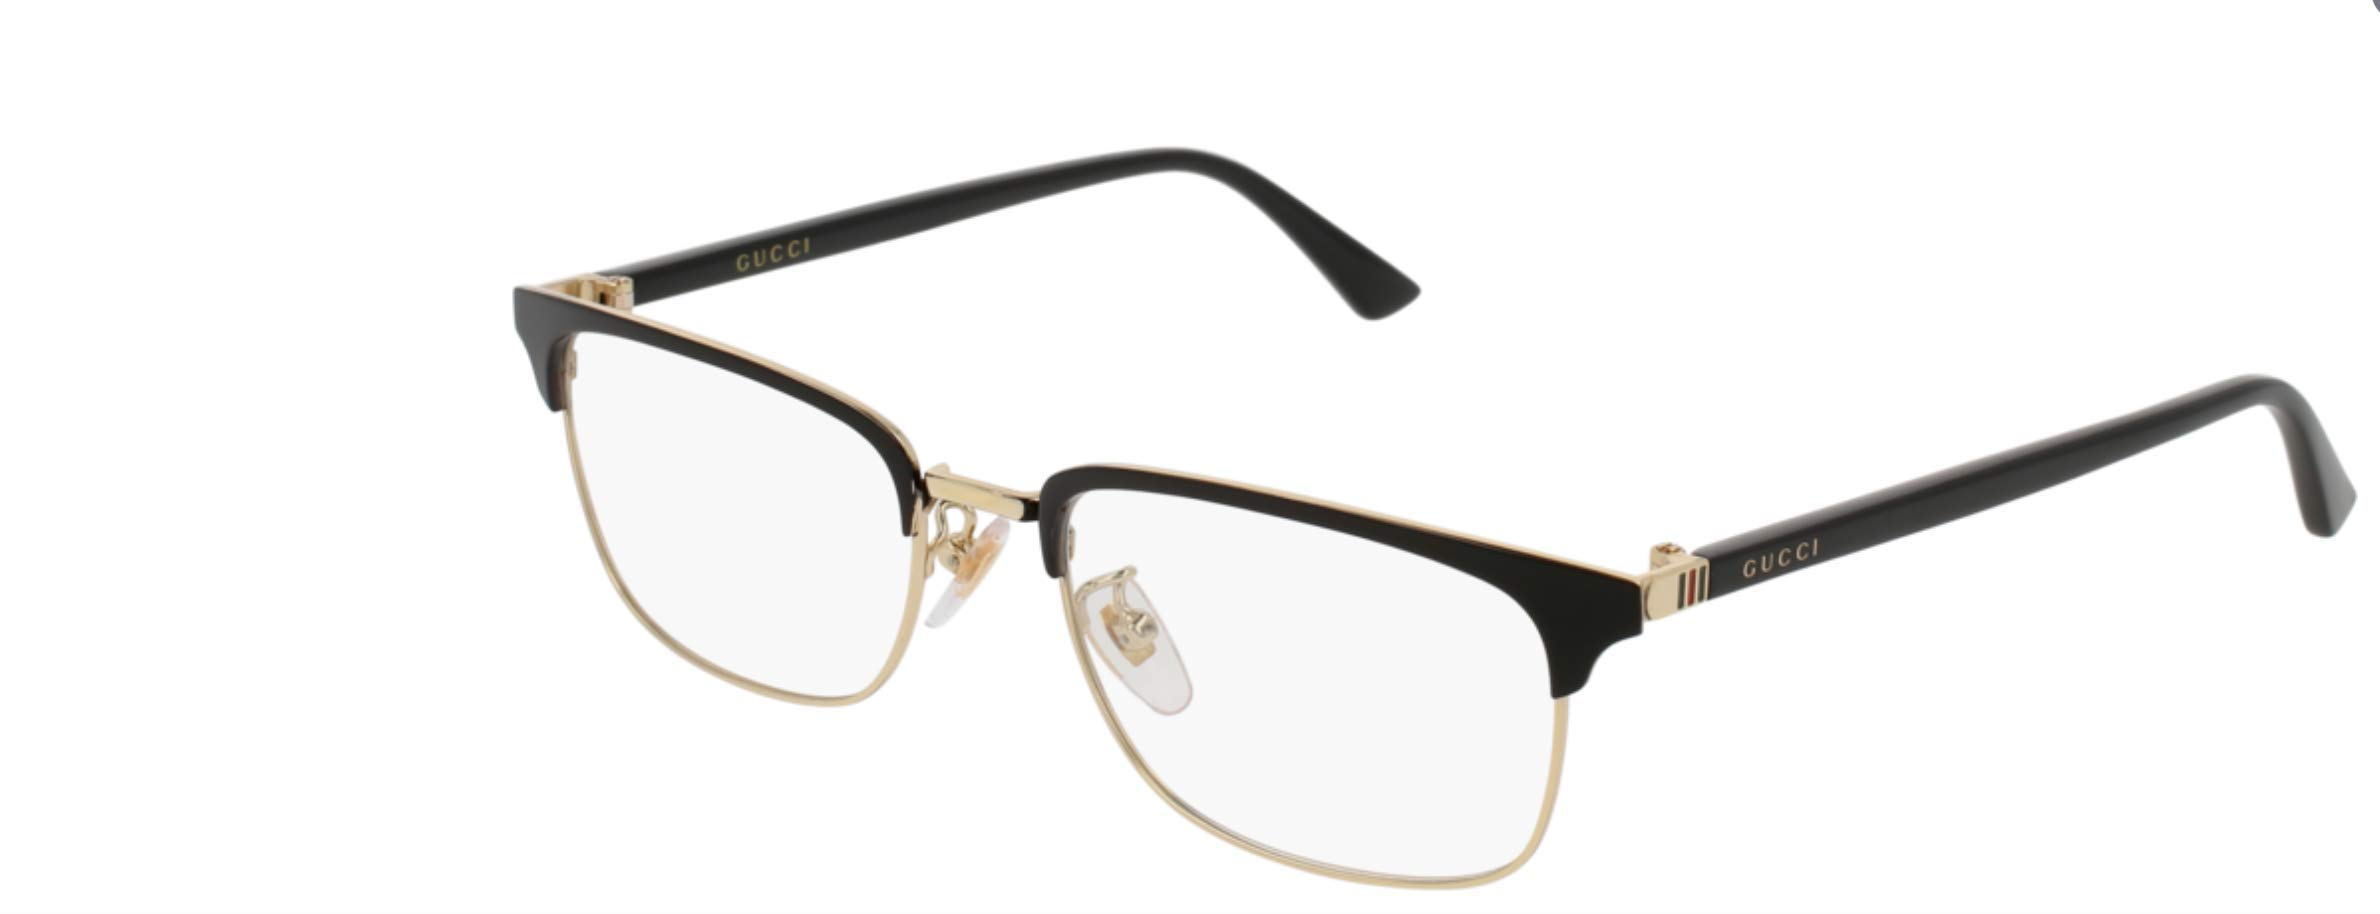 Eyeglasses Gucci GG 0131 O- 001 BLACK / by Gucci